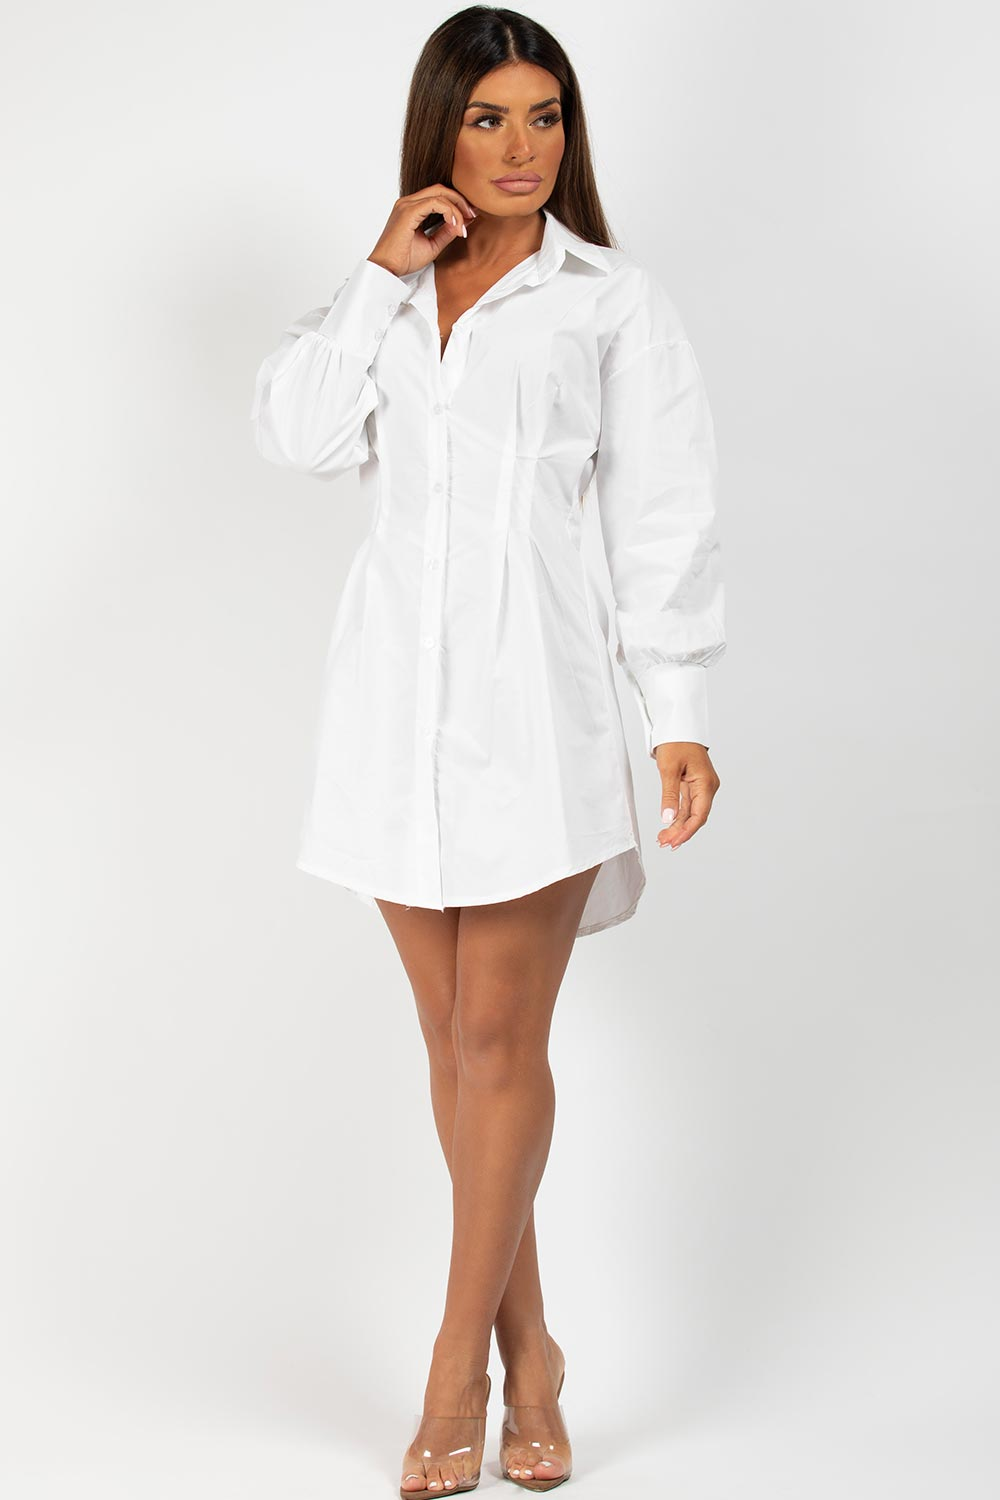 white cinched waist corset shirt dress